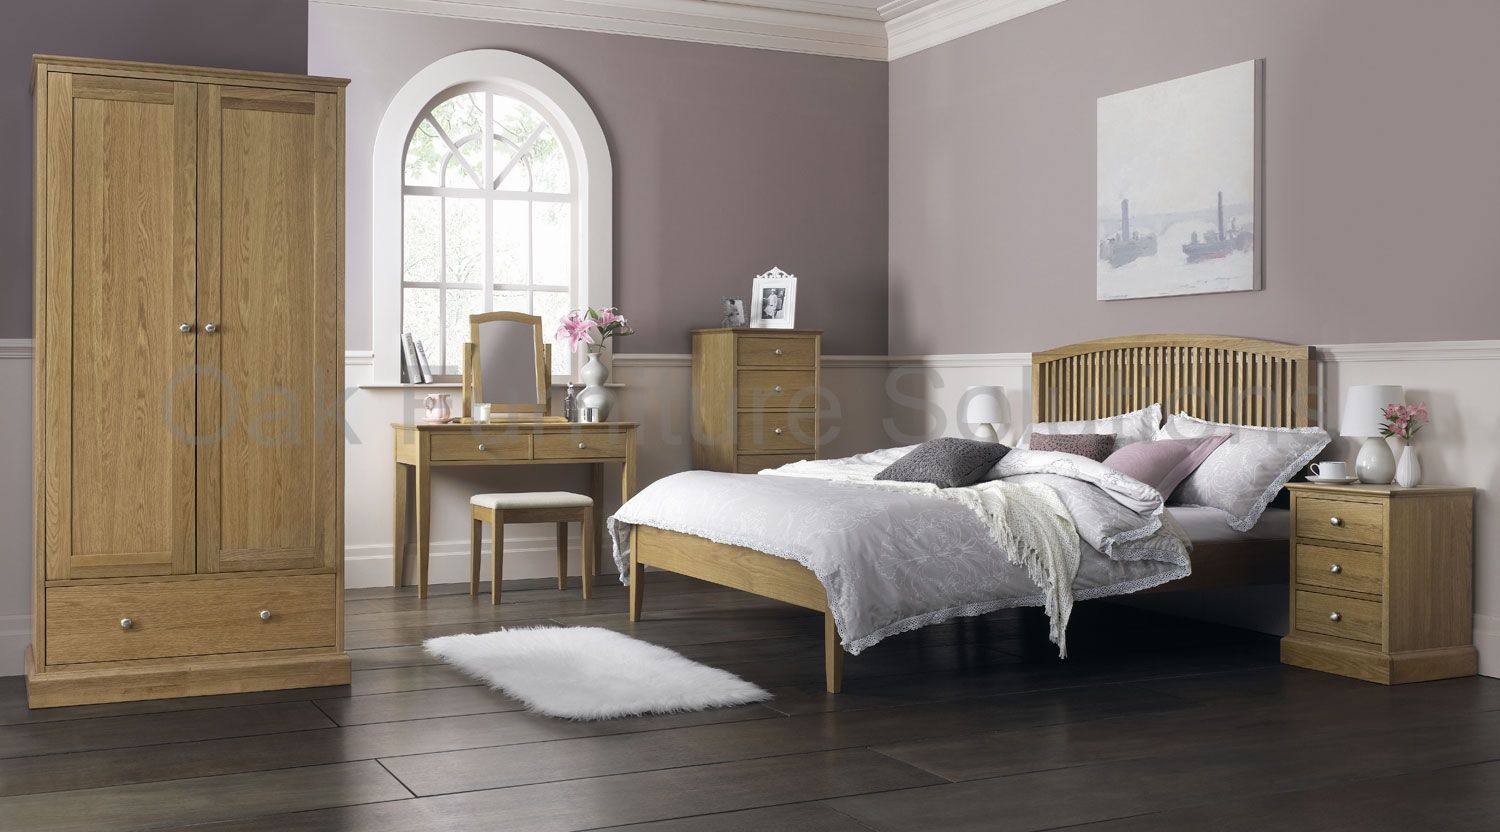 How To Choose The Best Colour Scheme Oak Bedroom Furniture Master Bedroom Furniture Light Oak Bedroom Furniture